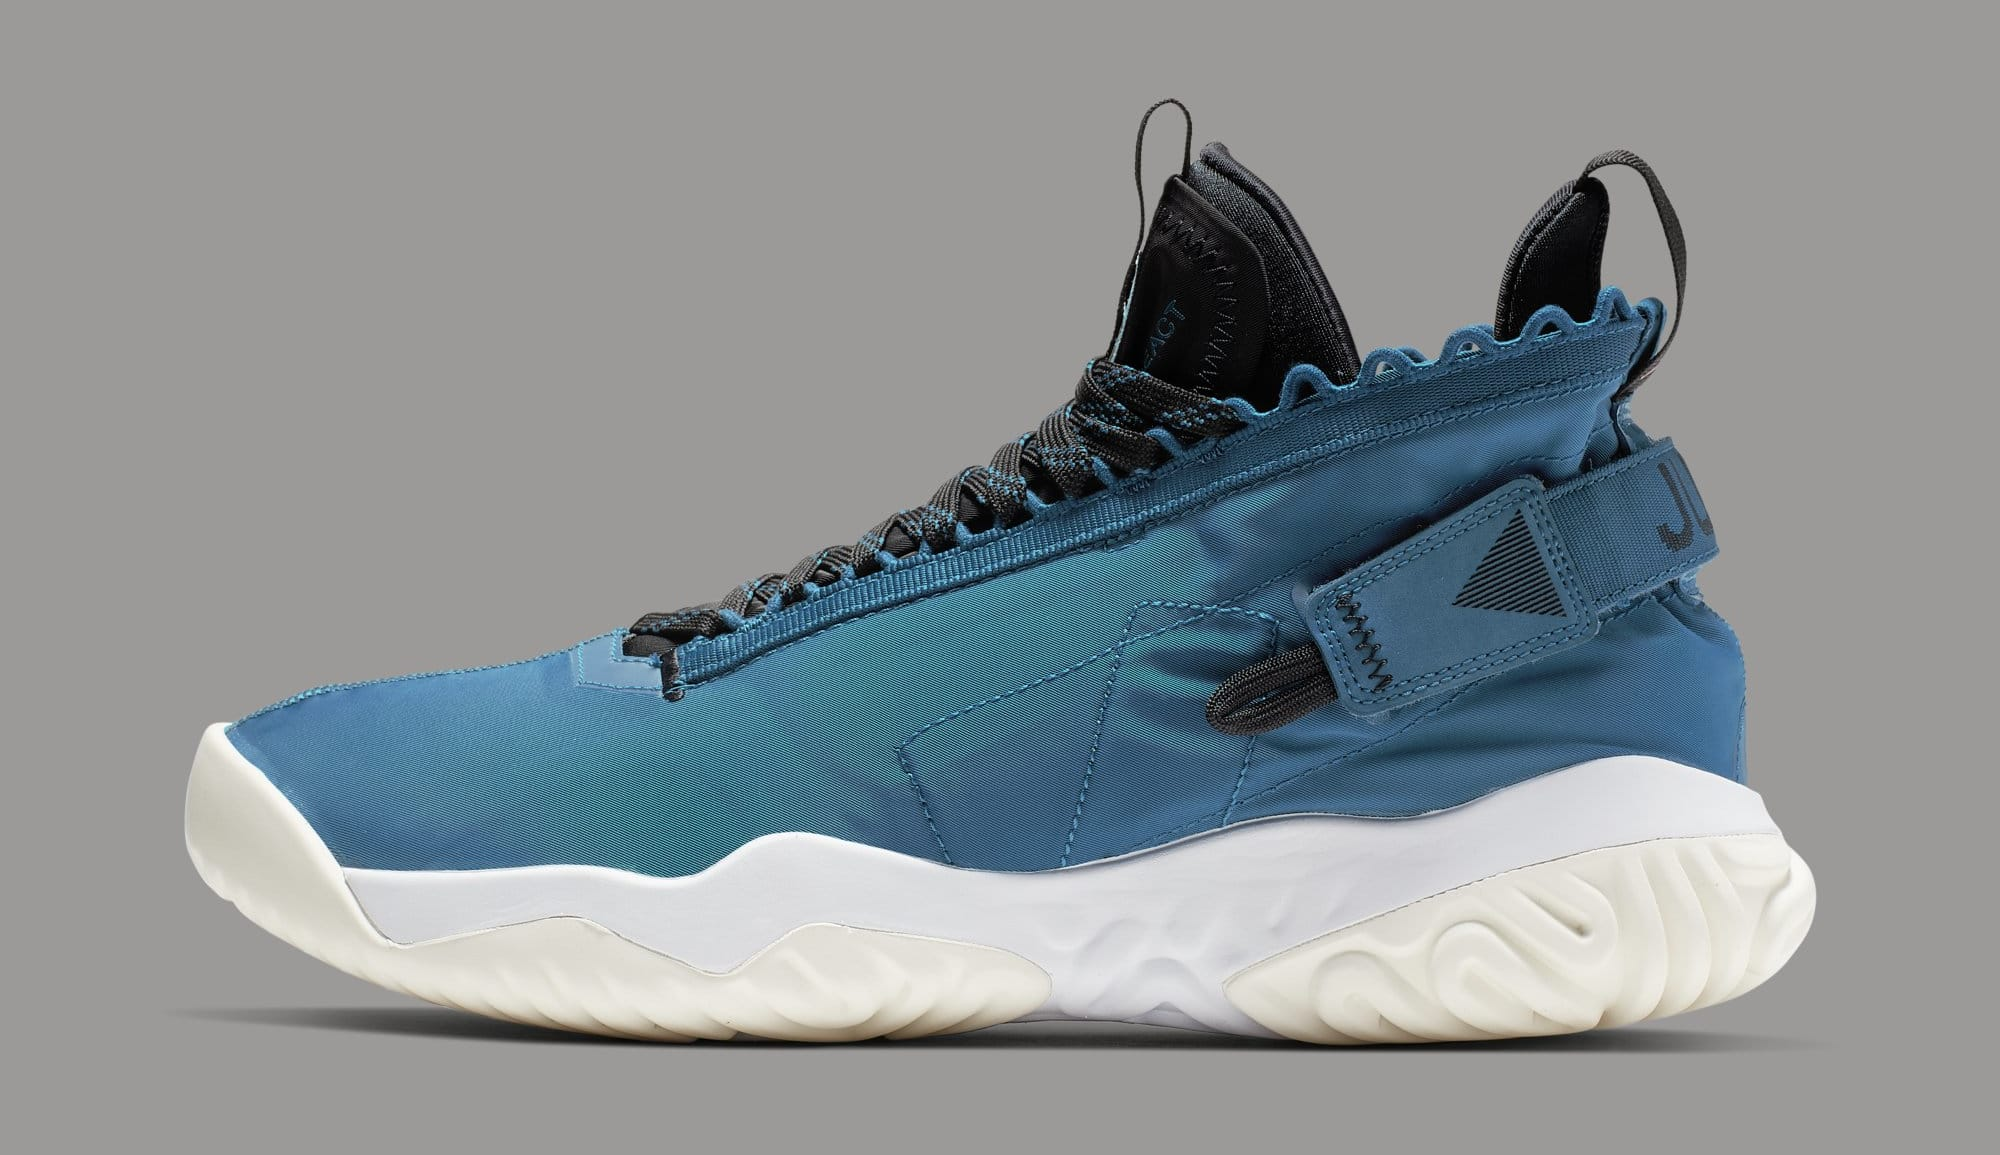 Jordan Proto-React 'Maybe I Destroyed the Game' BV1654-301 (Lateral)